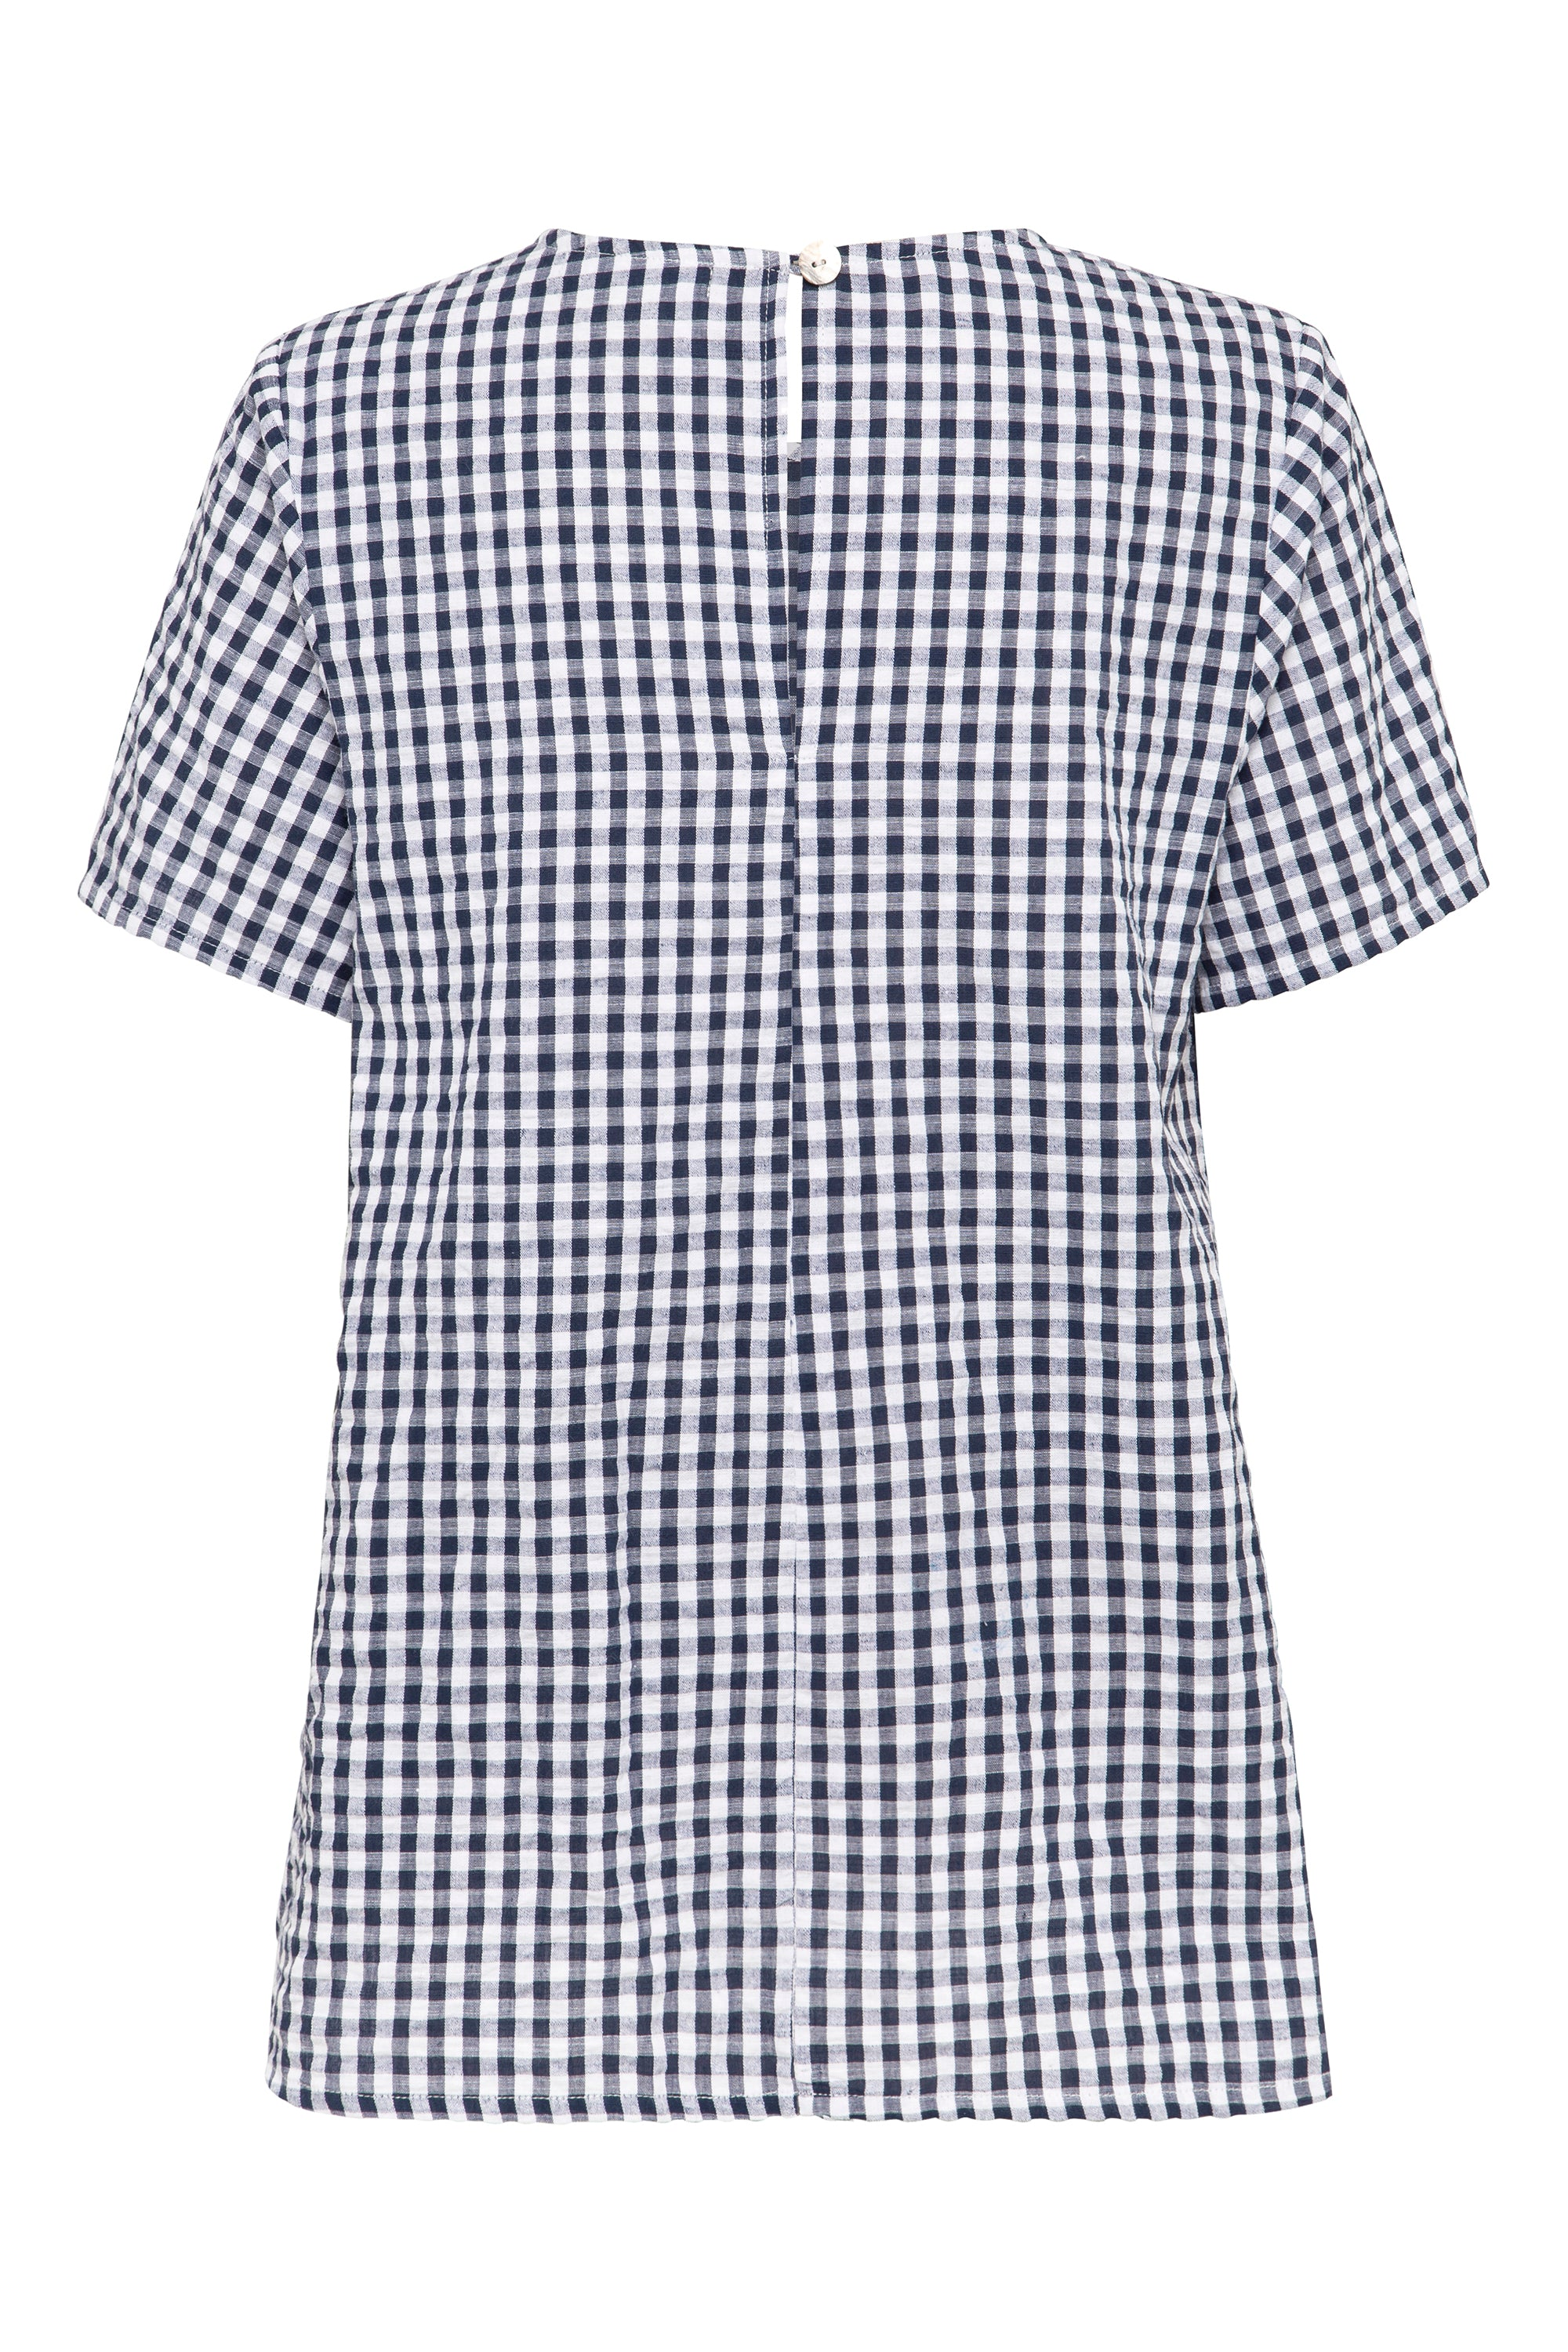 Daisy Top In Navy Gingham